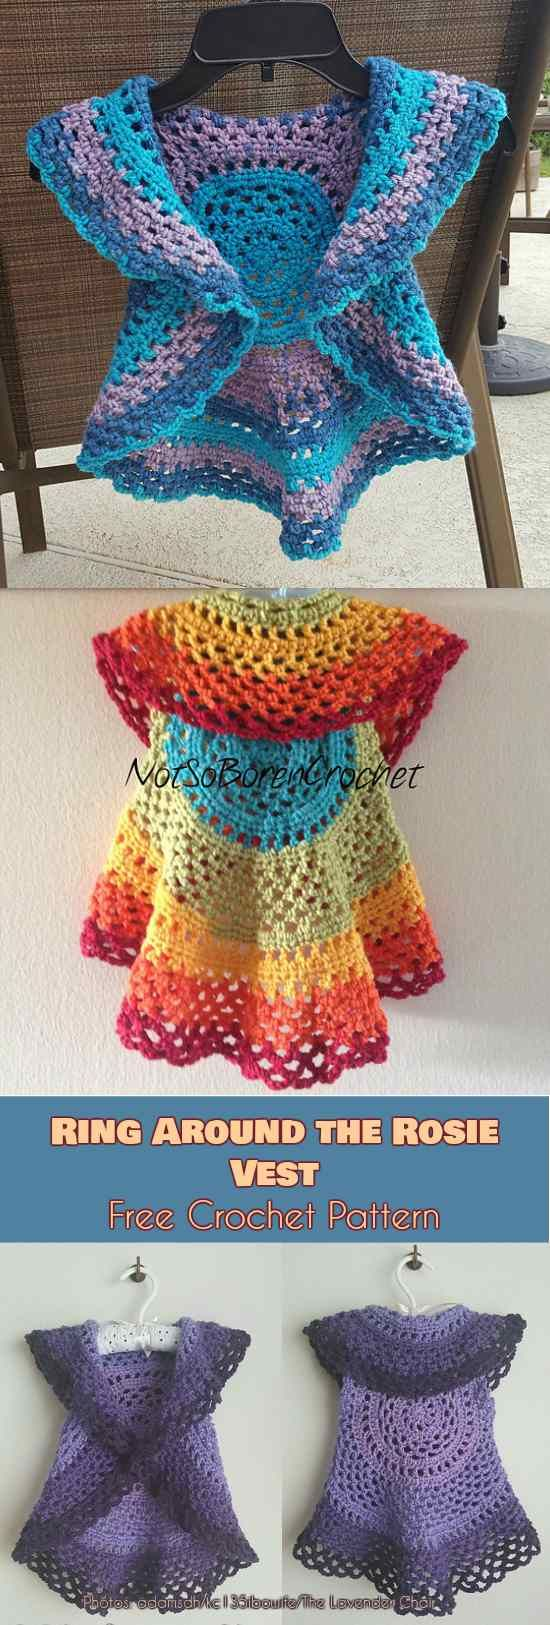 Ring Around Rosie Vest for Kids and Adults Free Pattern | Jacke ...